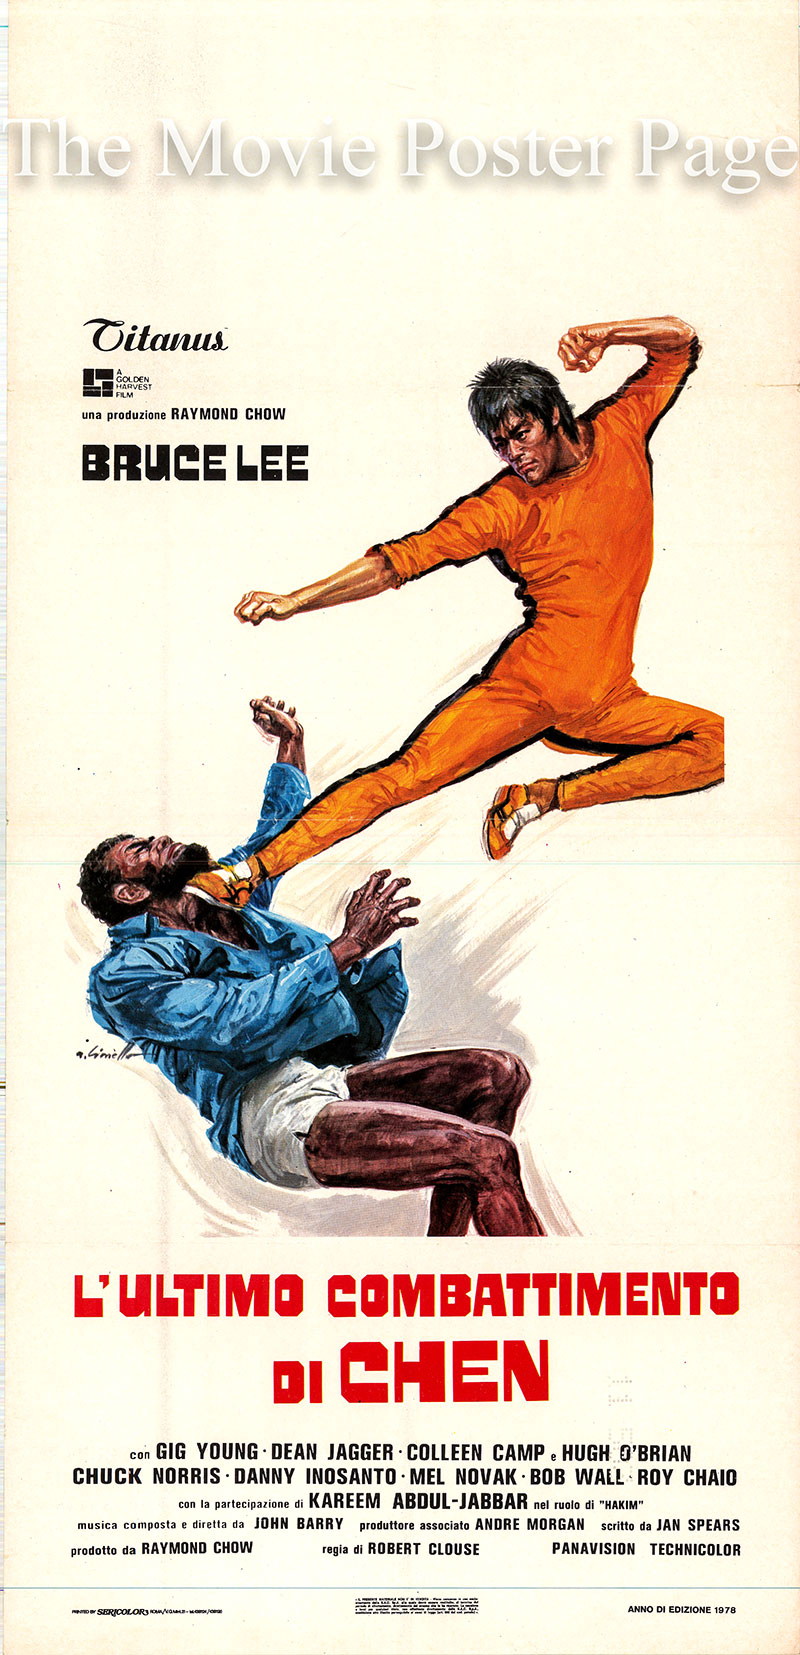 Pictured is an Italian locandina poster for the 1978 Robert Clouse film Game of Death starring Bruce Lee as Billy Lo.